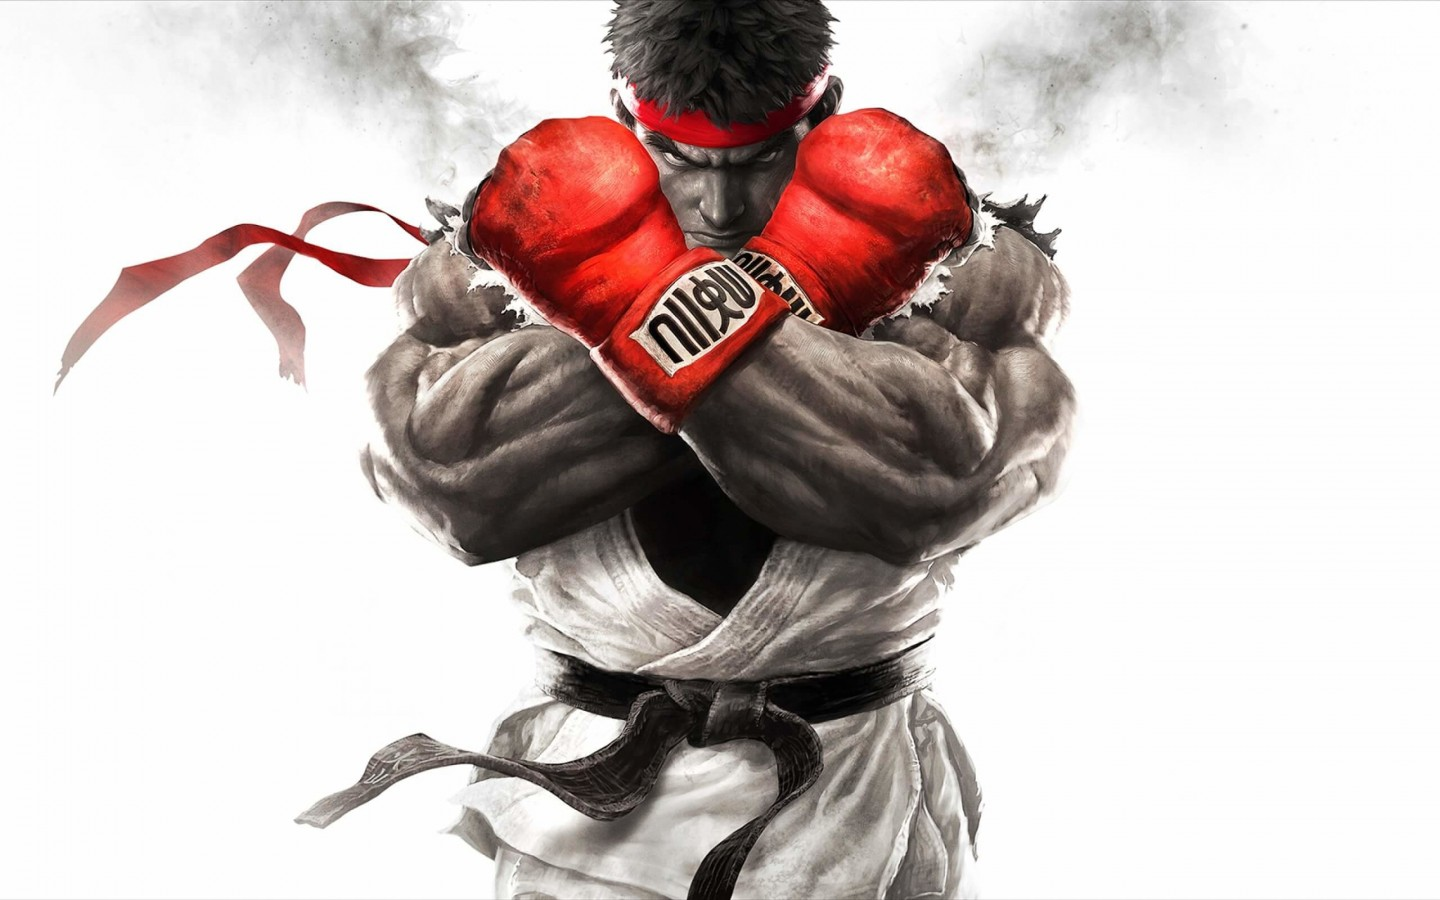 Ryu - Street Fighter Wallpaper for Desktop 1440x900